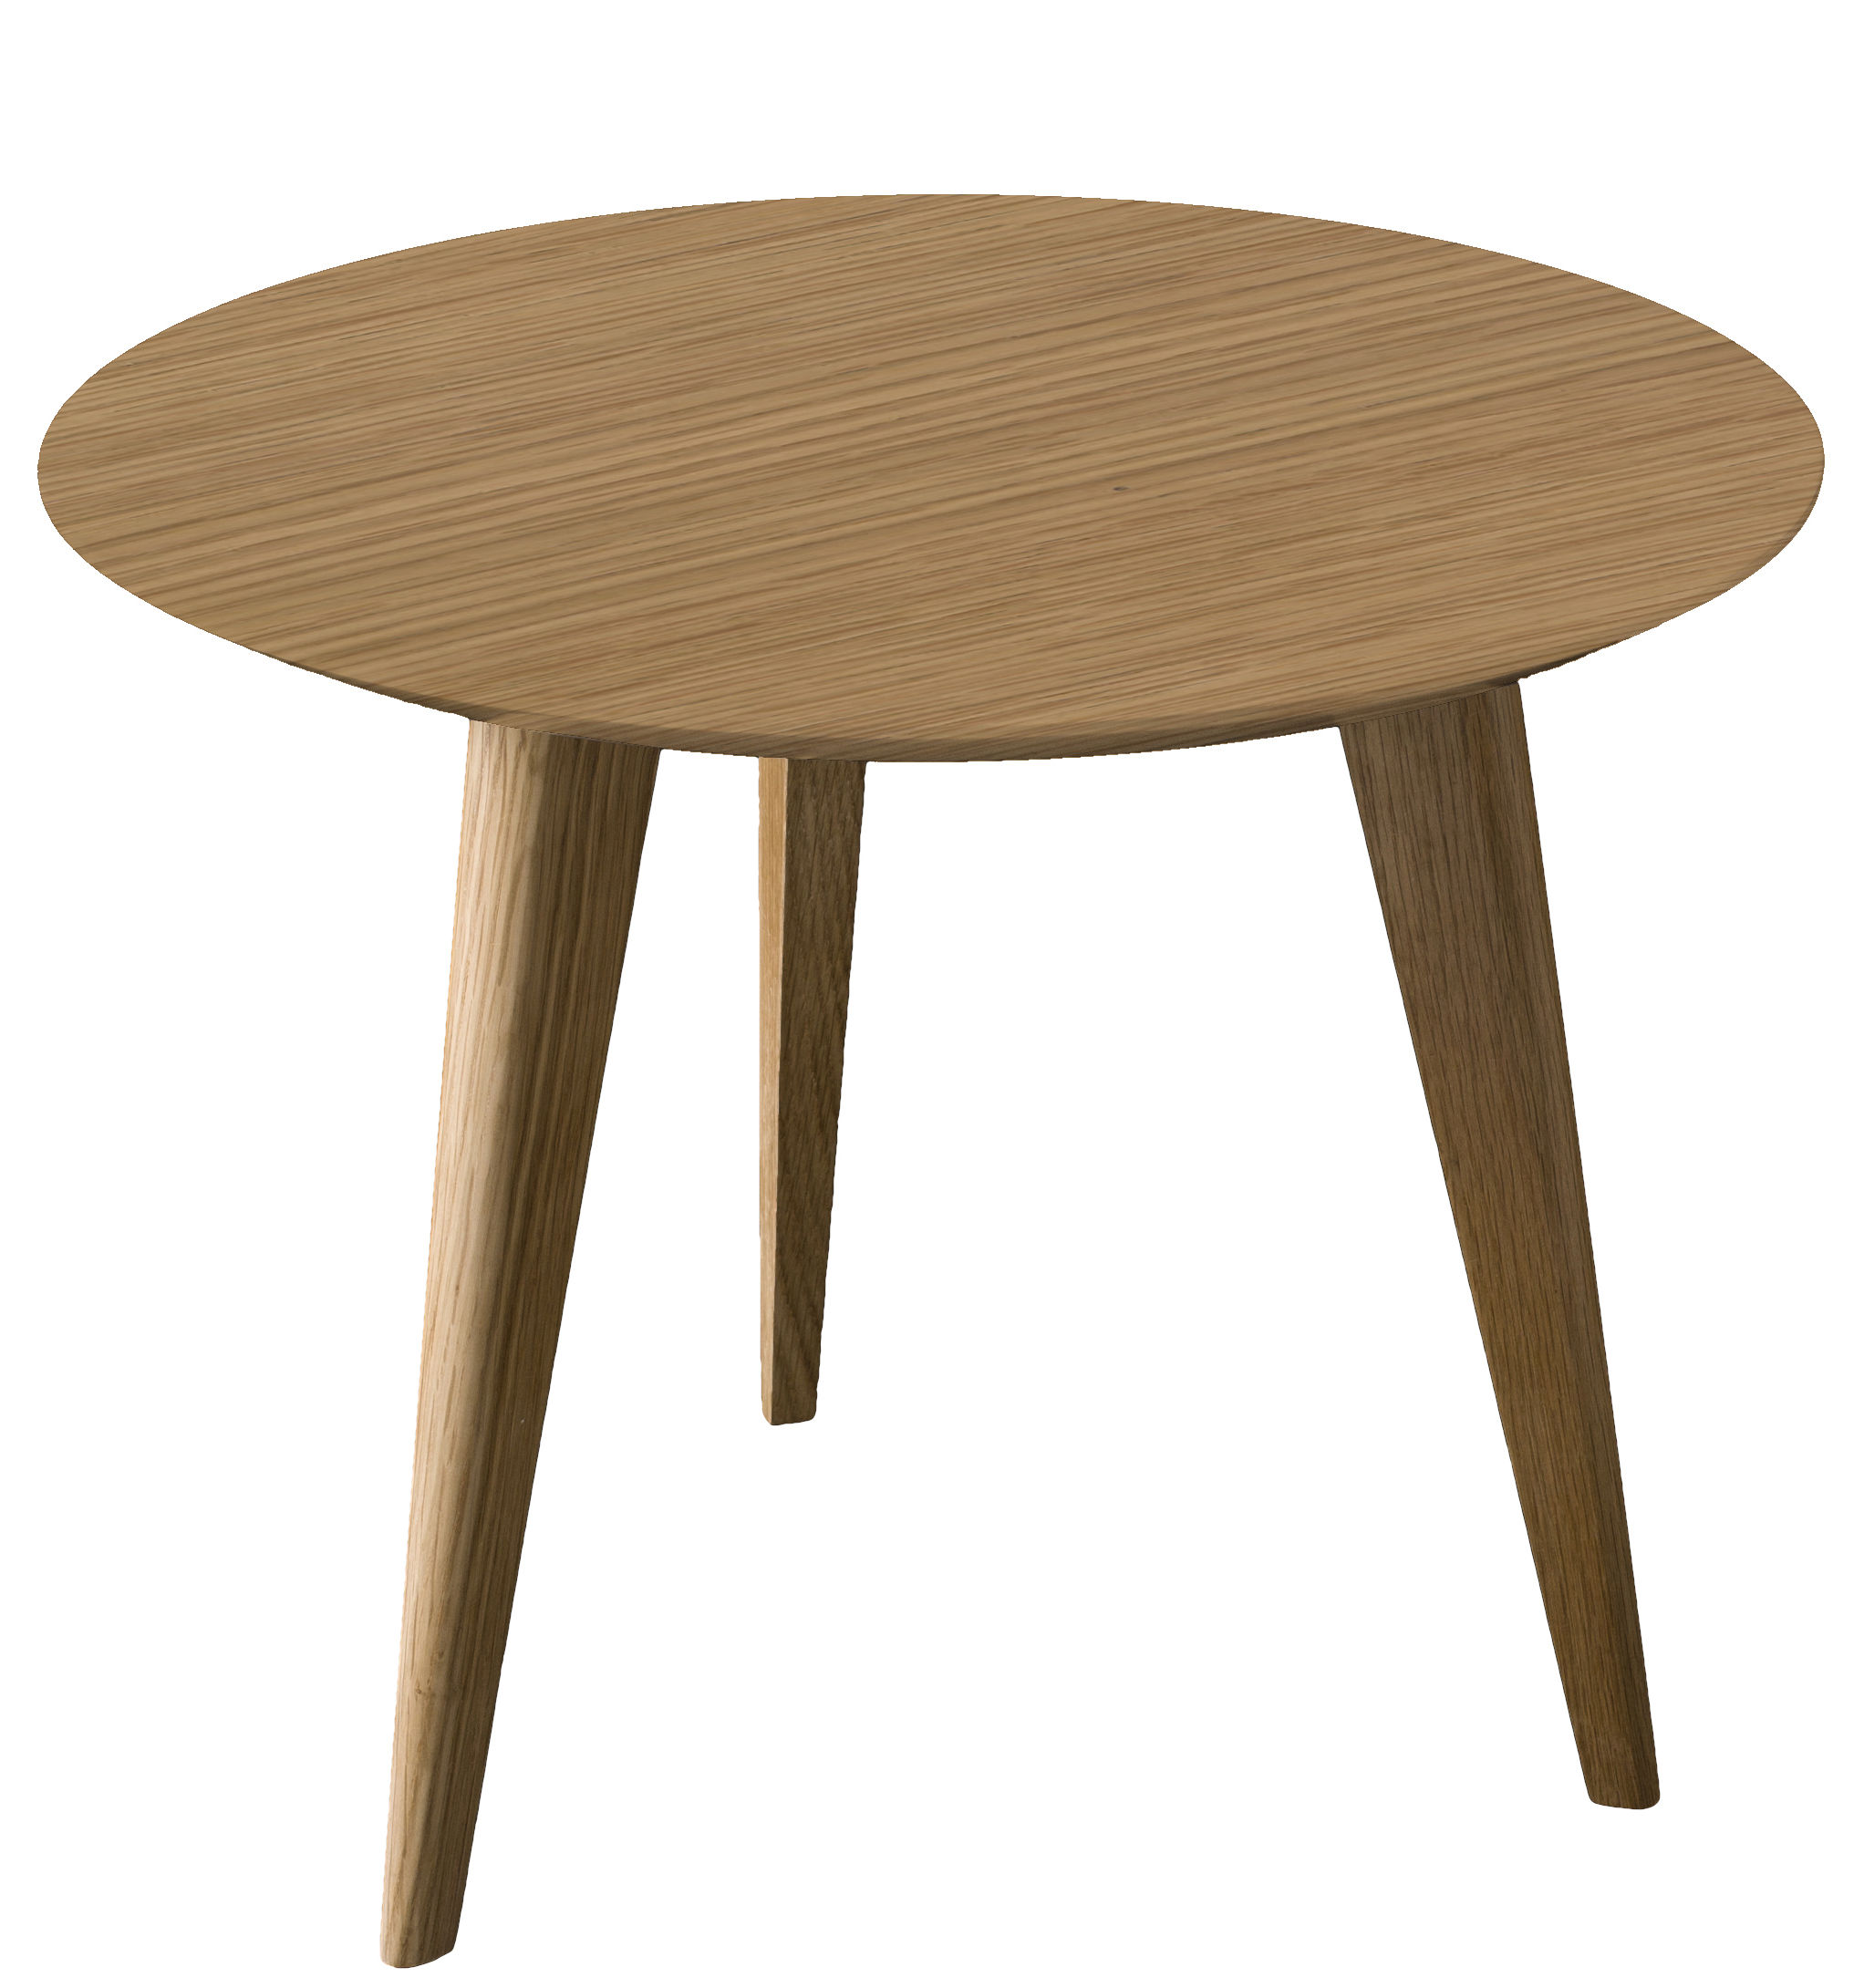 Furniture - Coffee Tables - Lalinde Ronde Coffee table by Sentou Edition - Oak / wood legs - MDF, Varnished oak